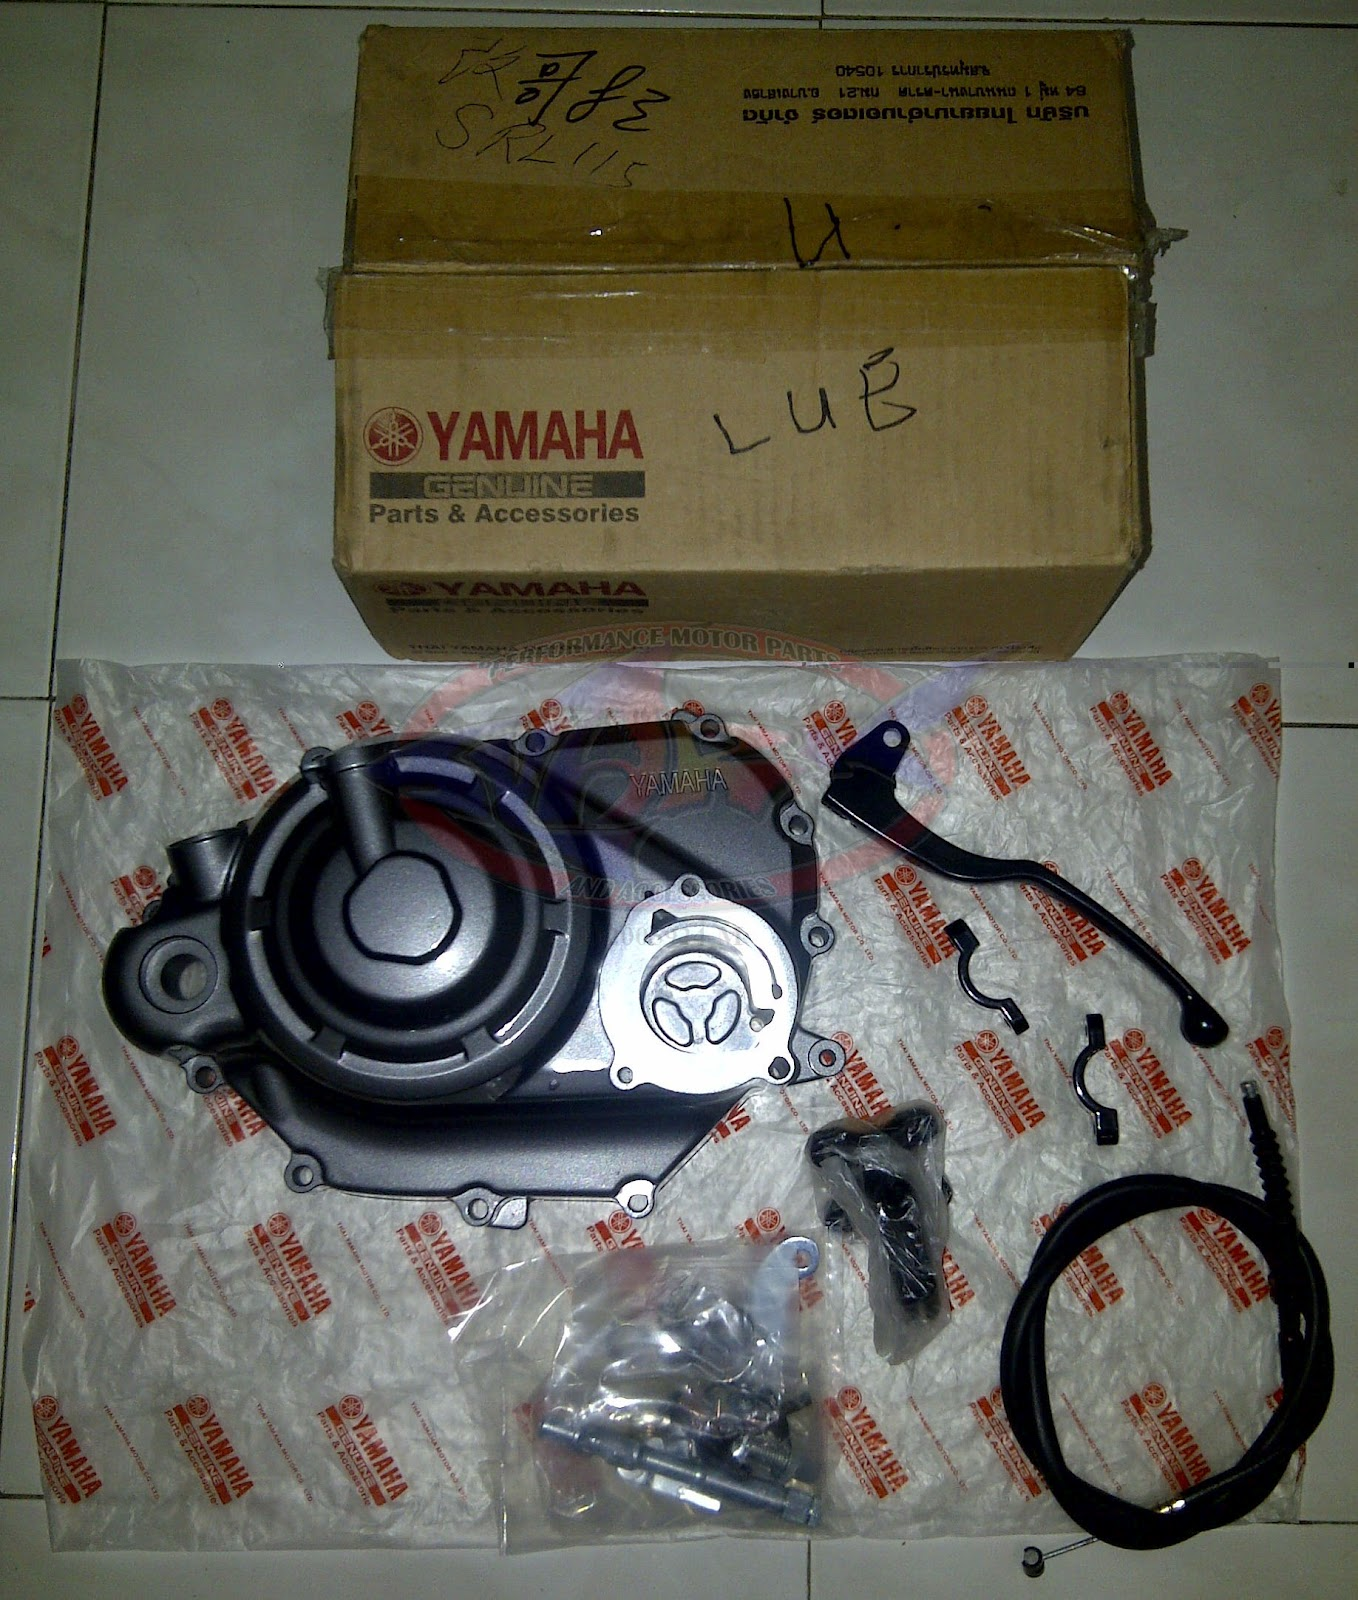 syark performance motor parts & accessories online shop (est on Yamaha 650 Chopper Wiring Diagrams for new manual handclutch for yamaha lagenda 115z jupiter 115z crypton 115z vega force 115 (genuine product by yamaha) at Yamaha 1100 Wiring Diagrams